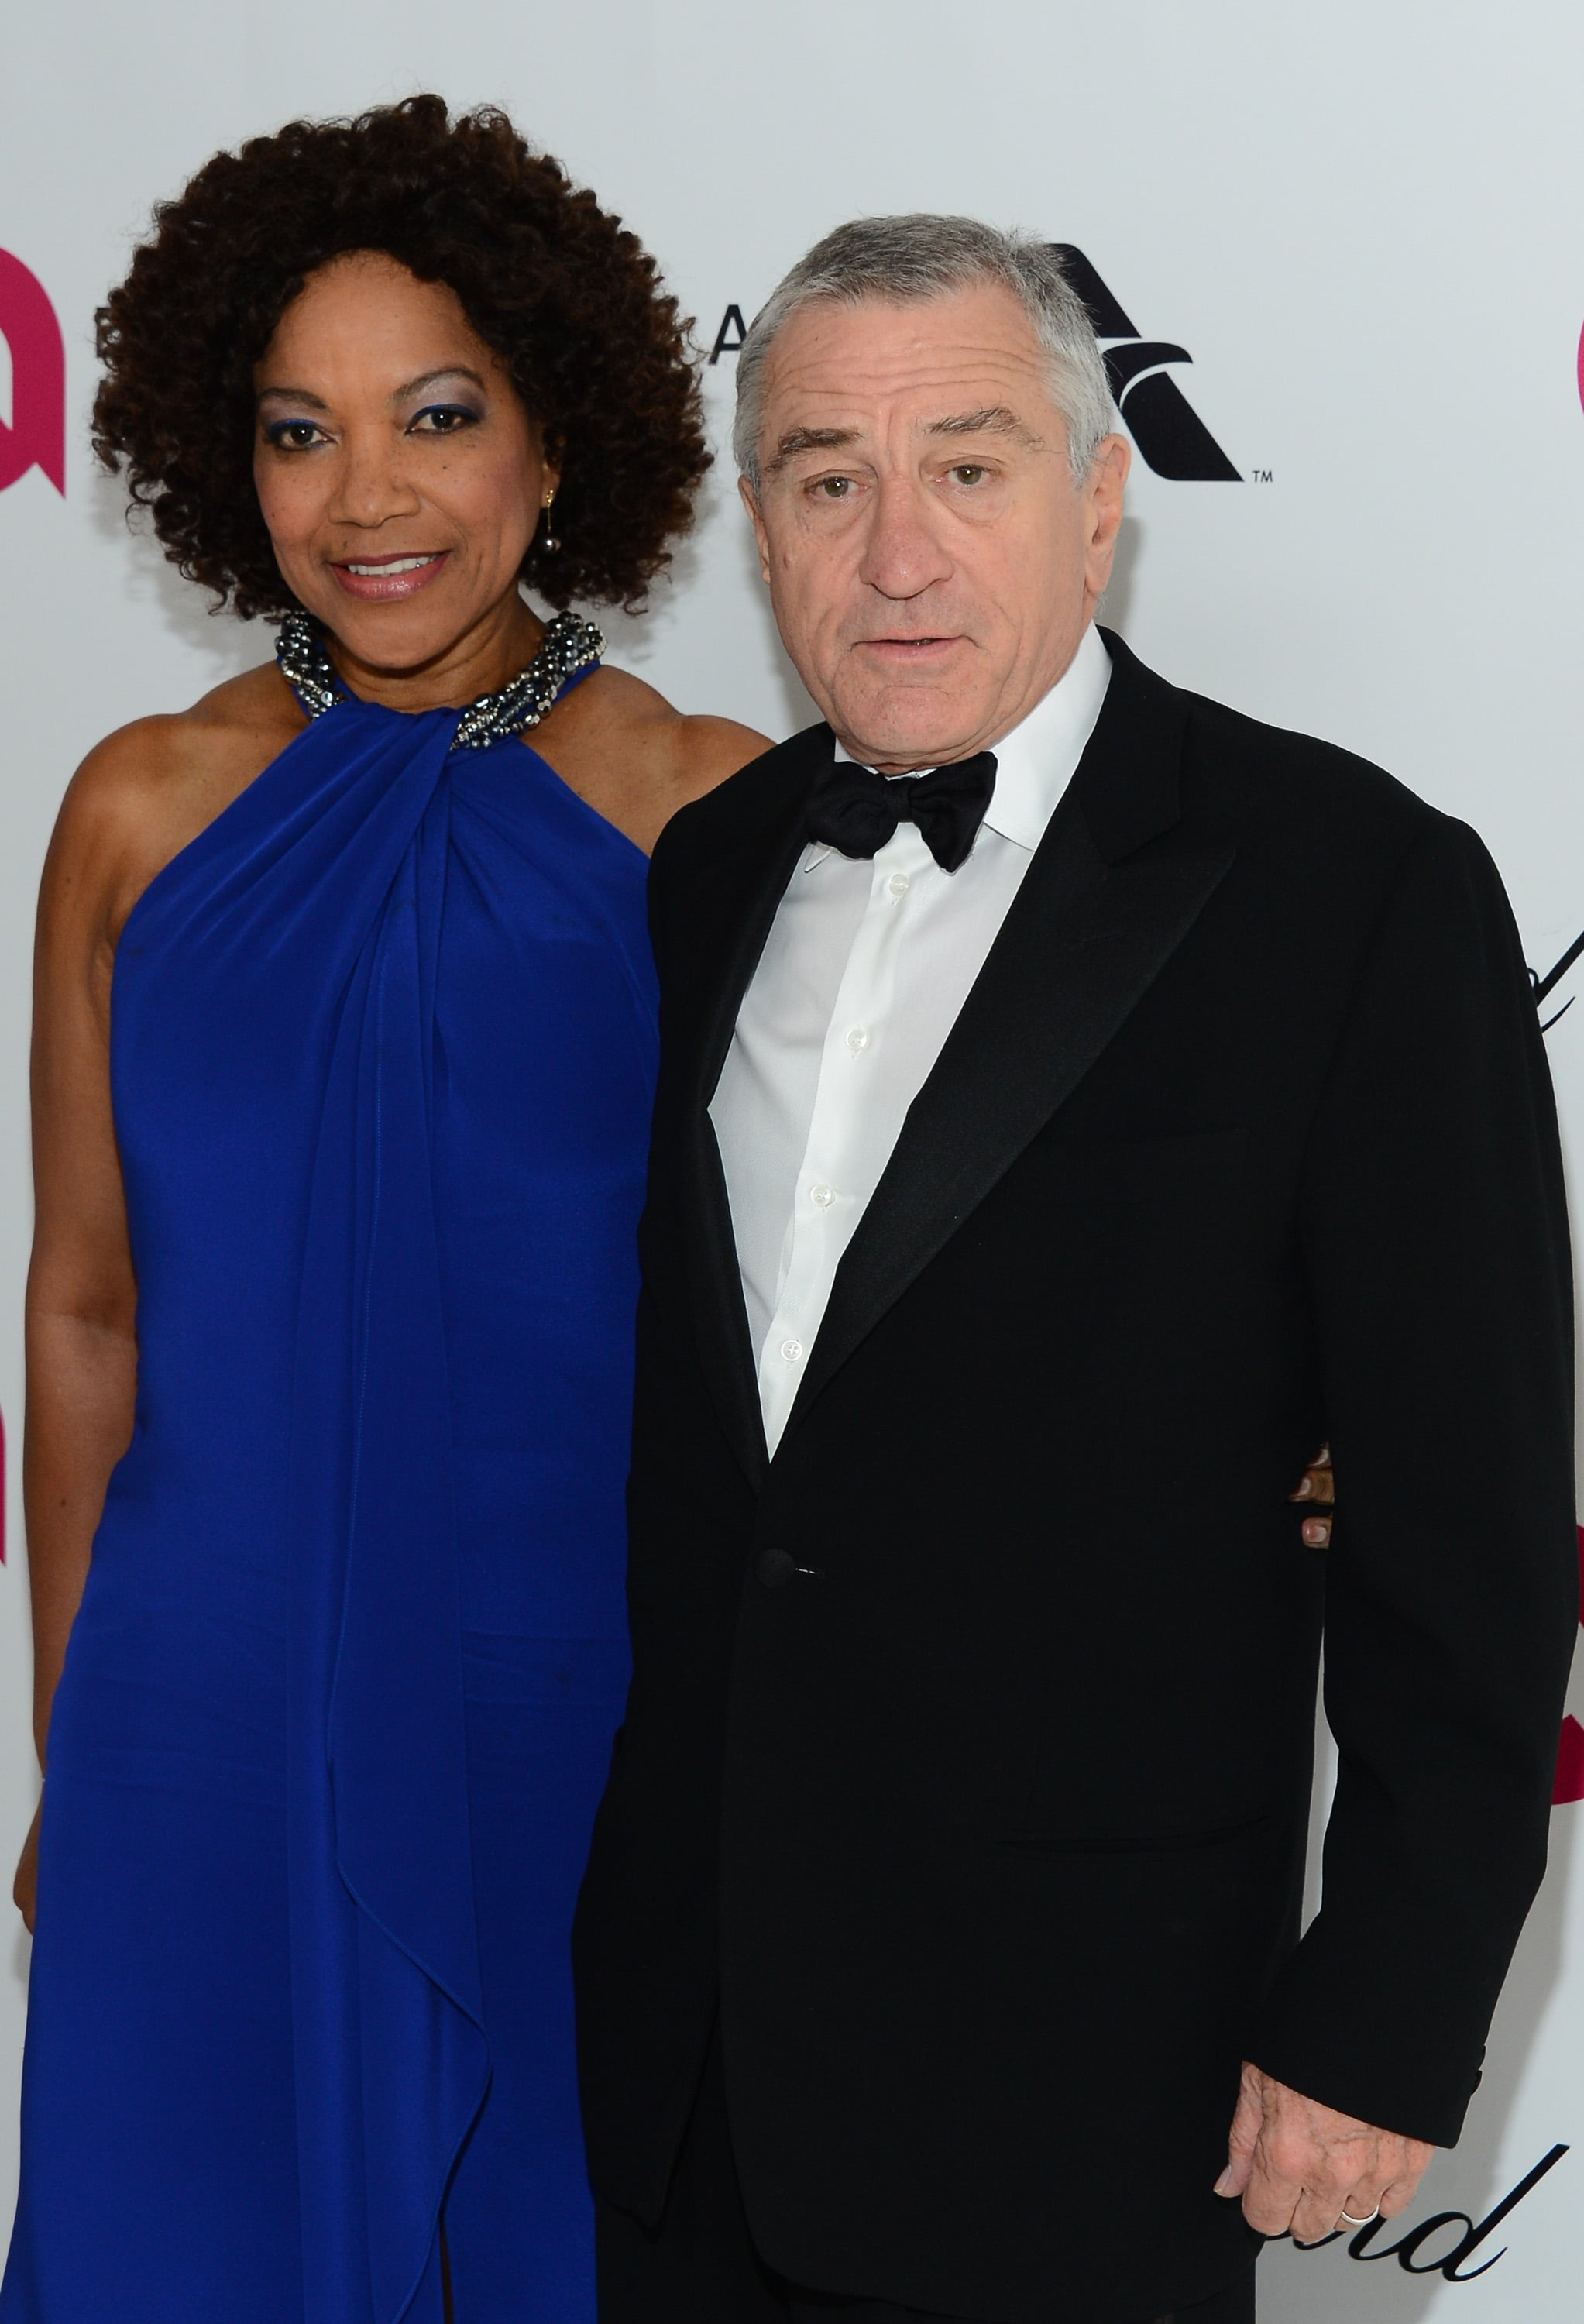 Robert De Niro and his wife, Grace Hightower, smiled ...